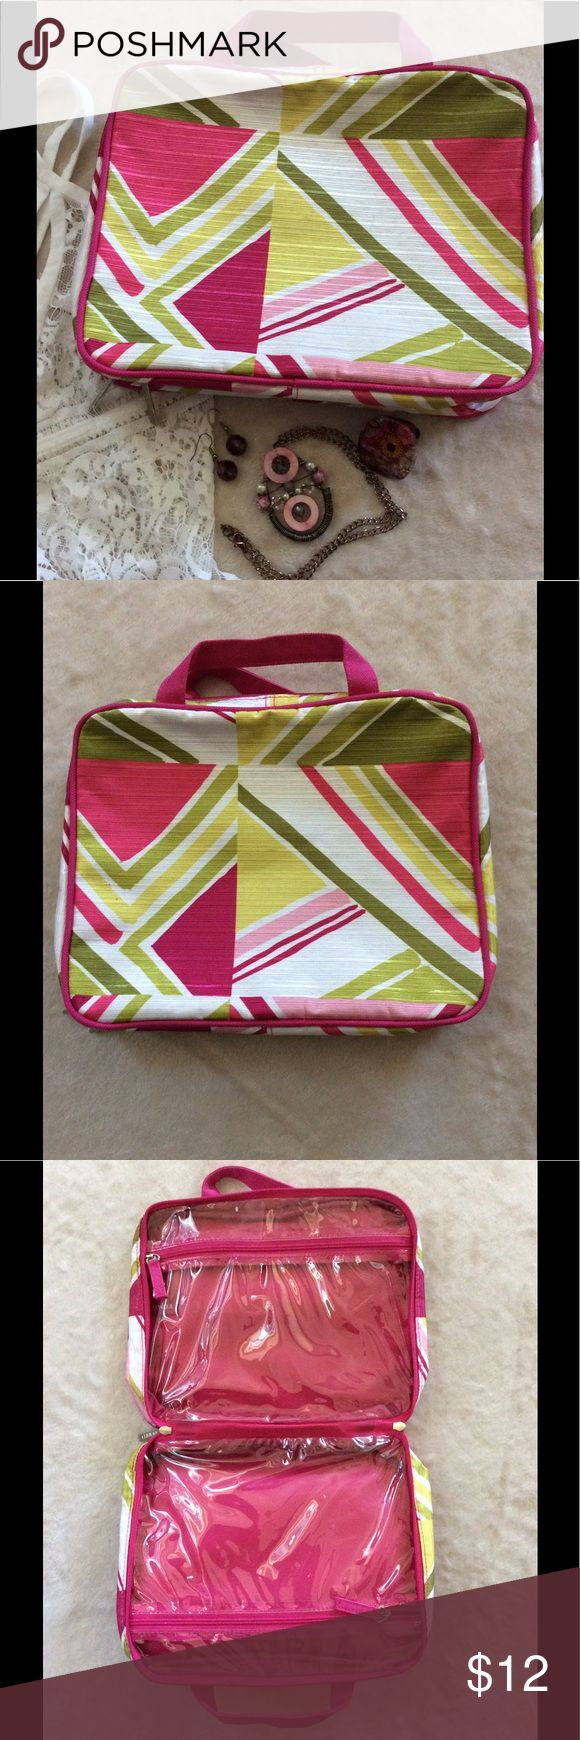 """Clinique Bathroom Travel Case New, never used, Clinique Bathroom Travel Case, in colors of hot pink, light pink, lime green, fluorescent yellow, & white. Opens opens up to two large zip plastic pockets, zip closure. Measures 8""""x10"""" closed, & 16""""x10"""" opened. Clinique Bags Travel Bags"""